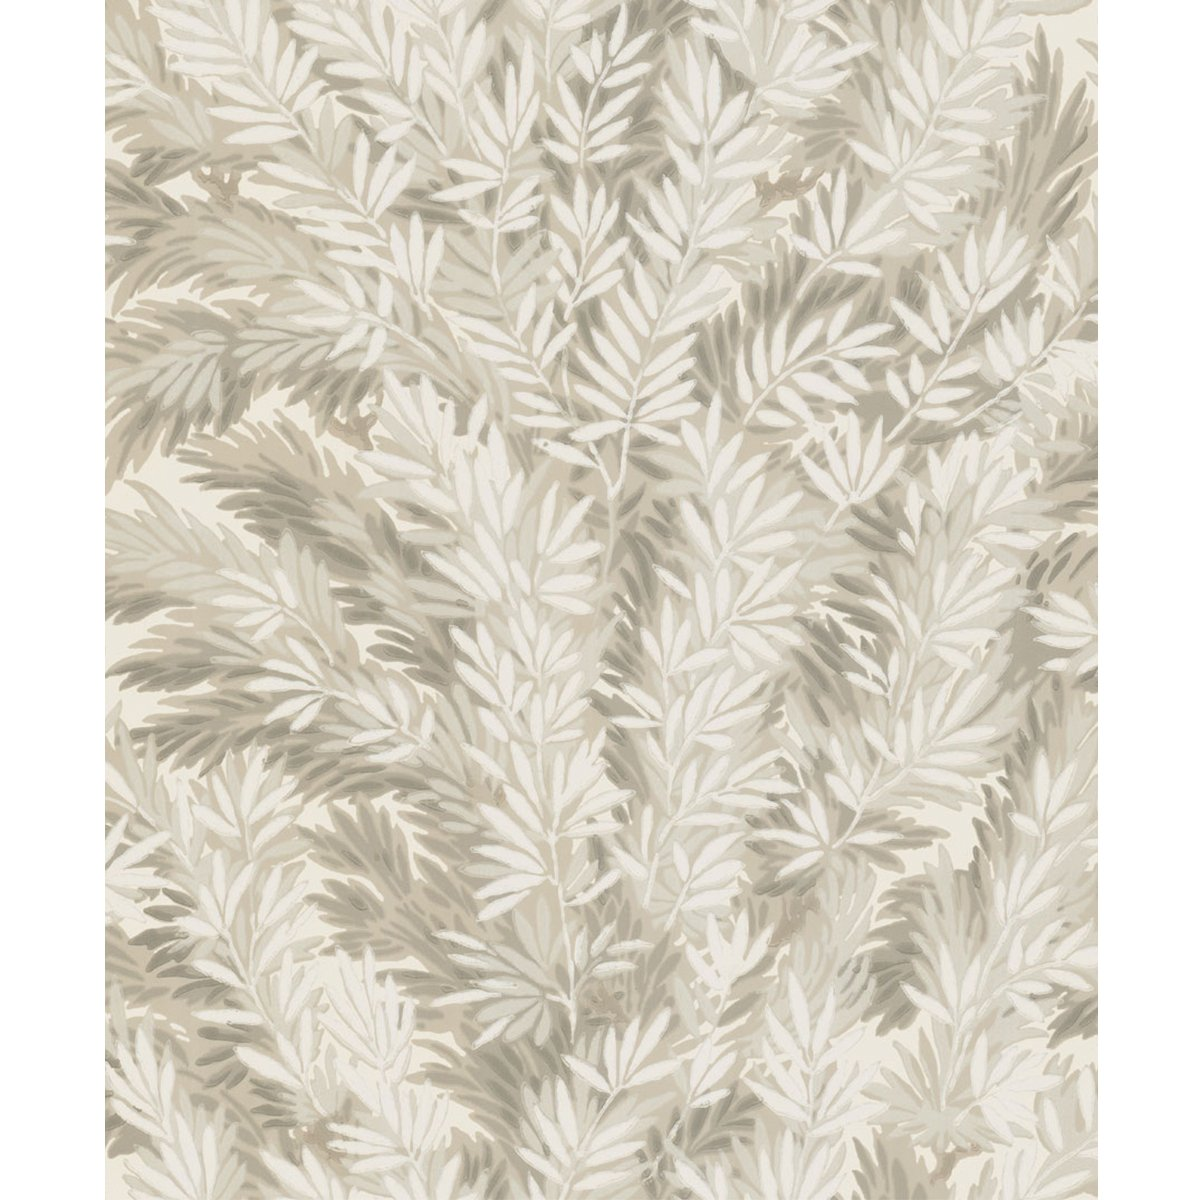 Cole & Son Florencecourt Behang - 1001005